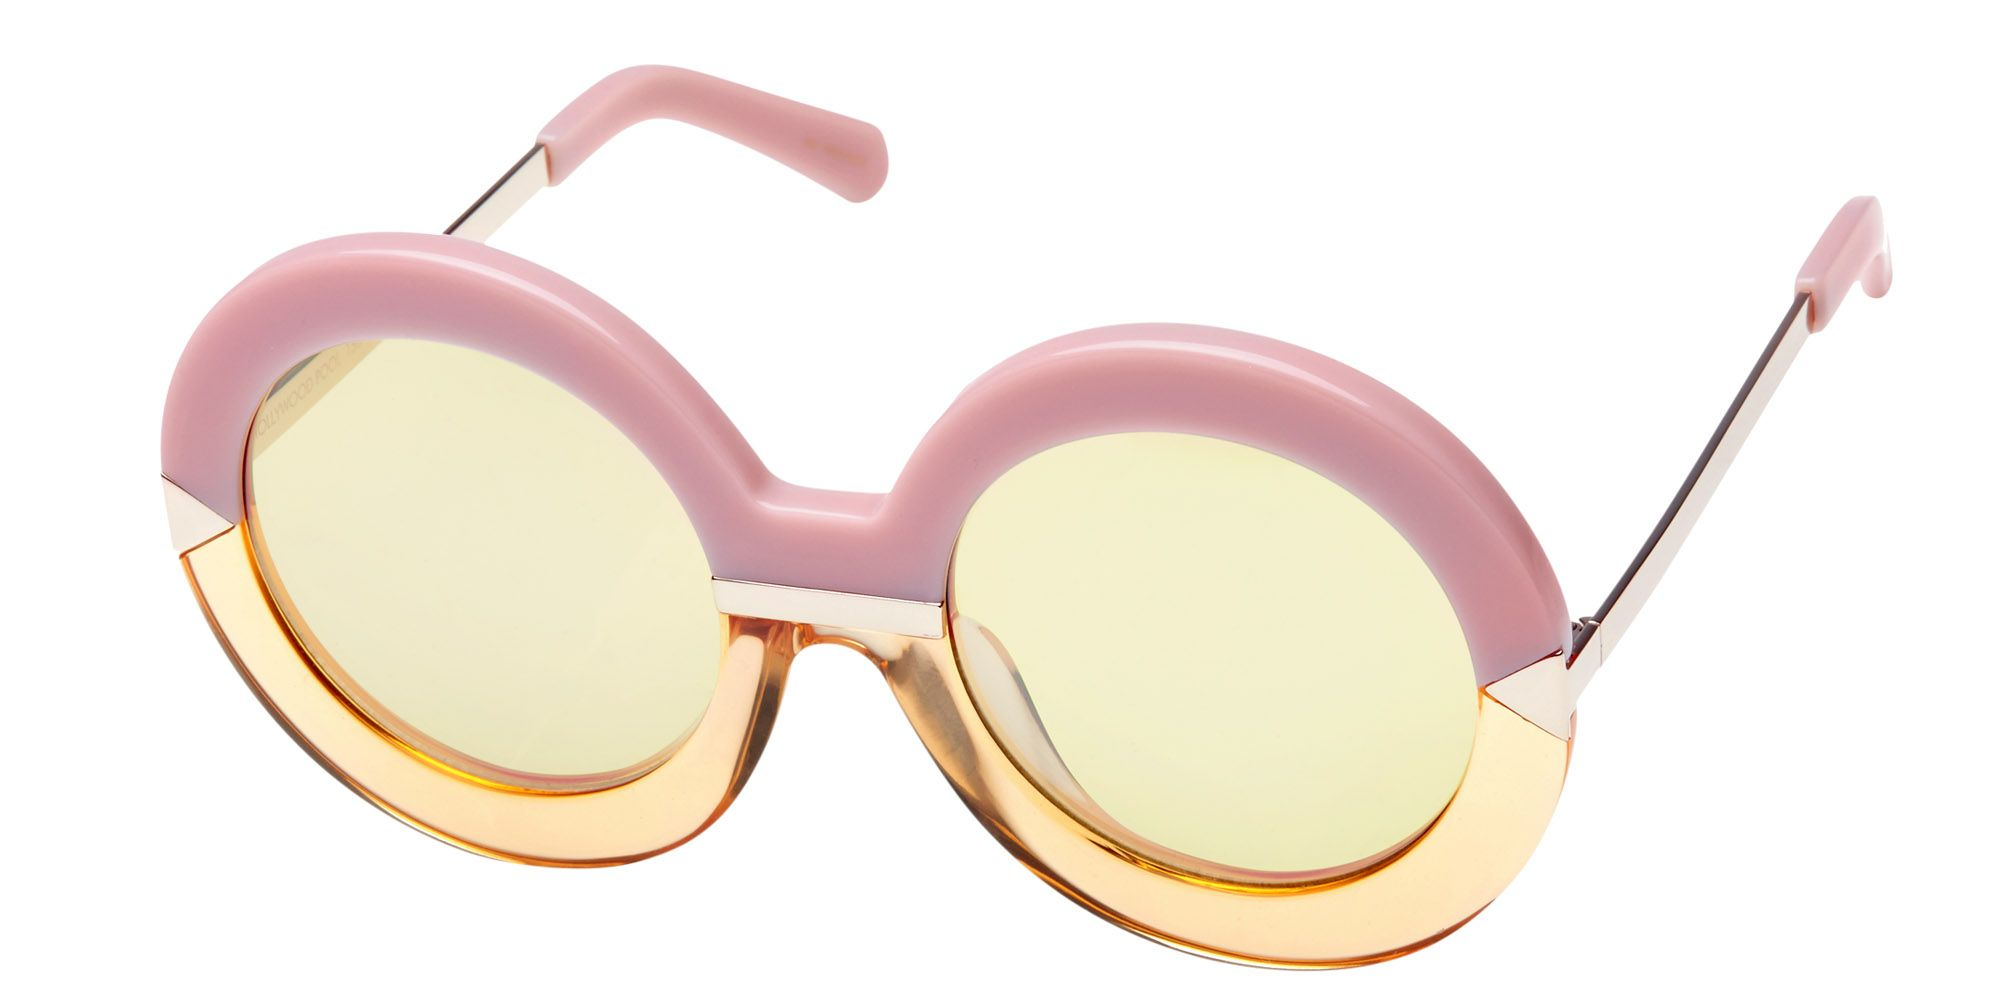 "<p><strong>Karen Walker</strong> sunglasses, $300, <a href=""https://www.shopbop.com/hollywood-pool-sunglasses-karen-walker/vp/v=1/1522211254.htm?folderID=2534374302162611&fm=other&os=false&colorId=90652"" target=""_blank"">shopbop.com</a>. </p>"